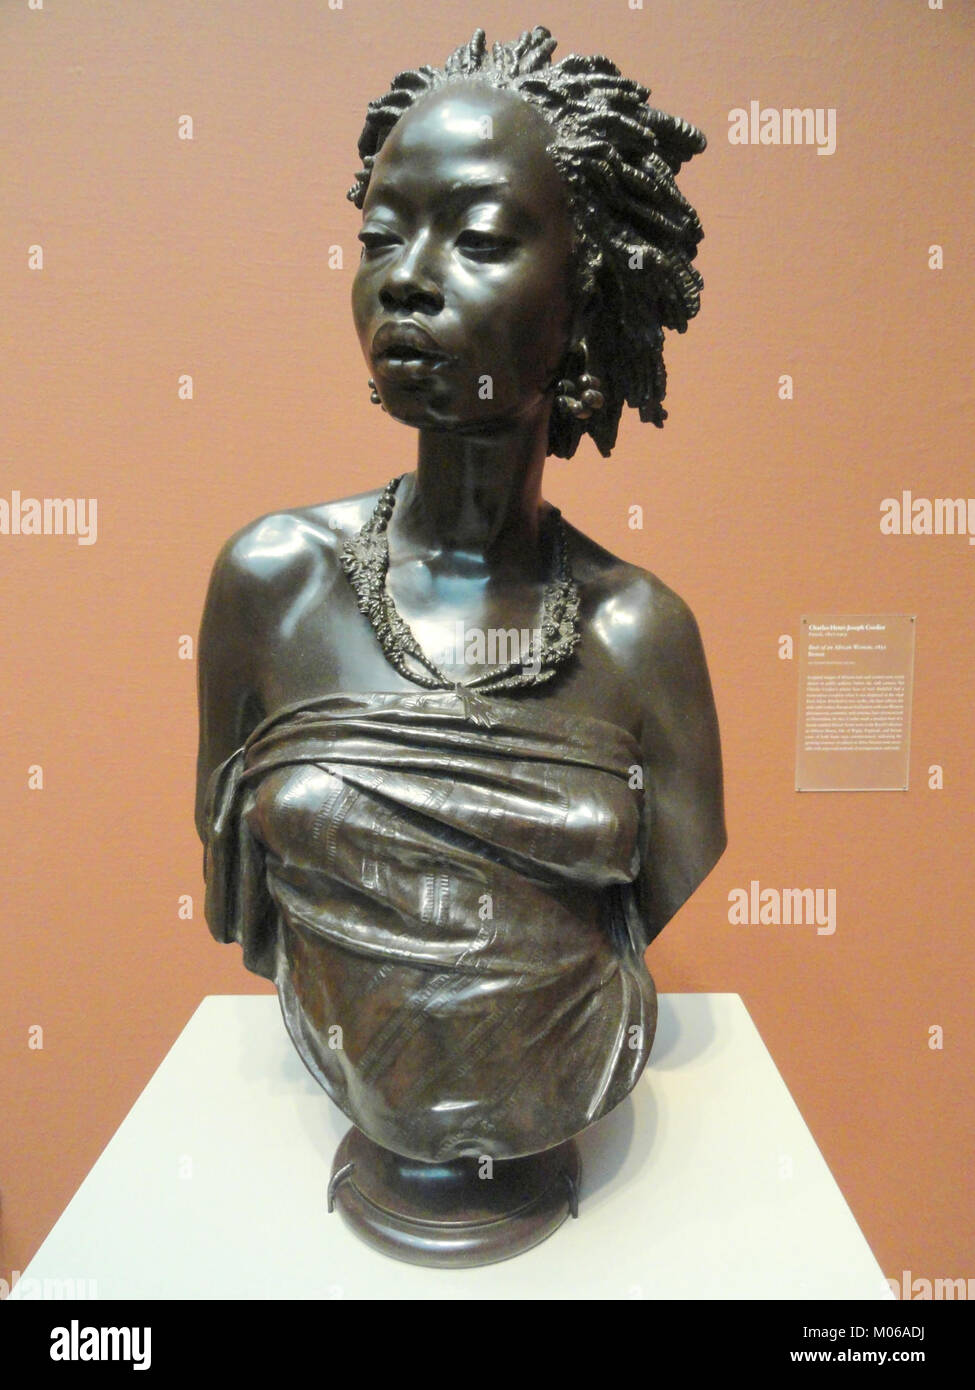 Bust of an African Woman, 1851, by Charles-Henri-Joseph Cordier, bronze - Art Institute of Chicago - DSC09587 - Stock Image